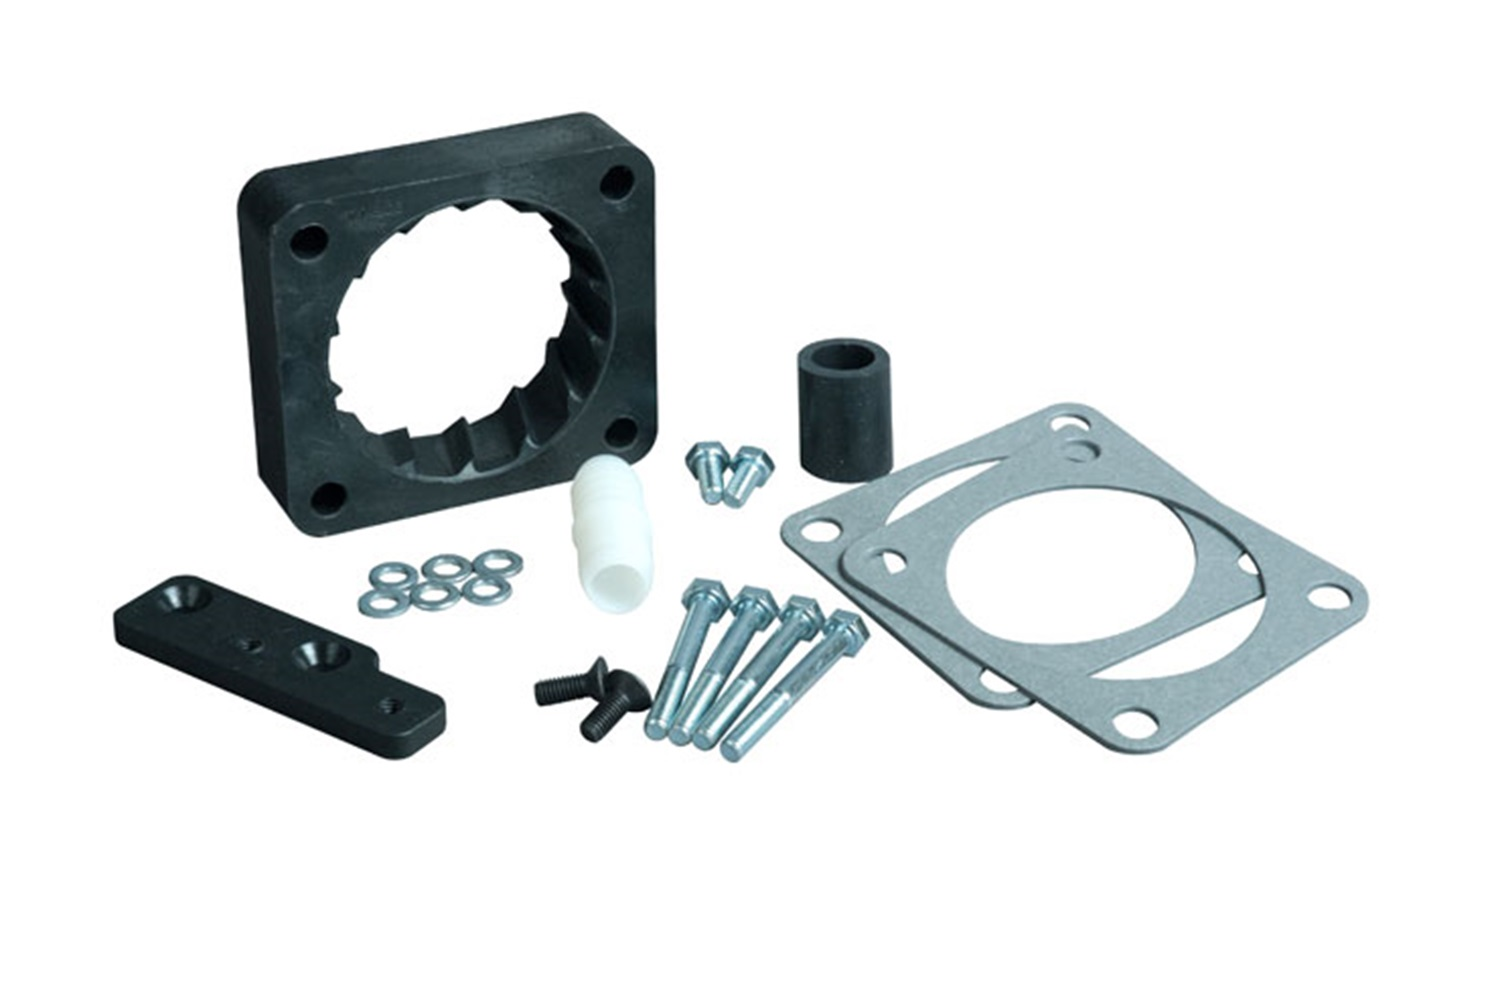 Volant Performance 729846 Vortice Throttle Body Spacer Fits 99-04 Mustang